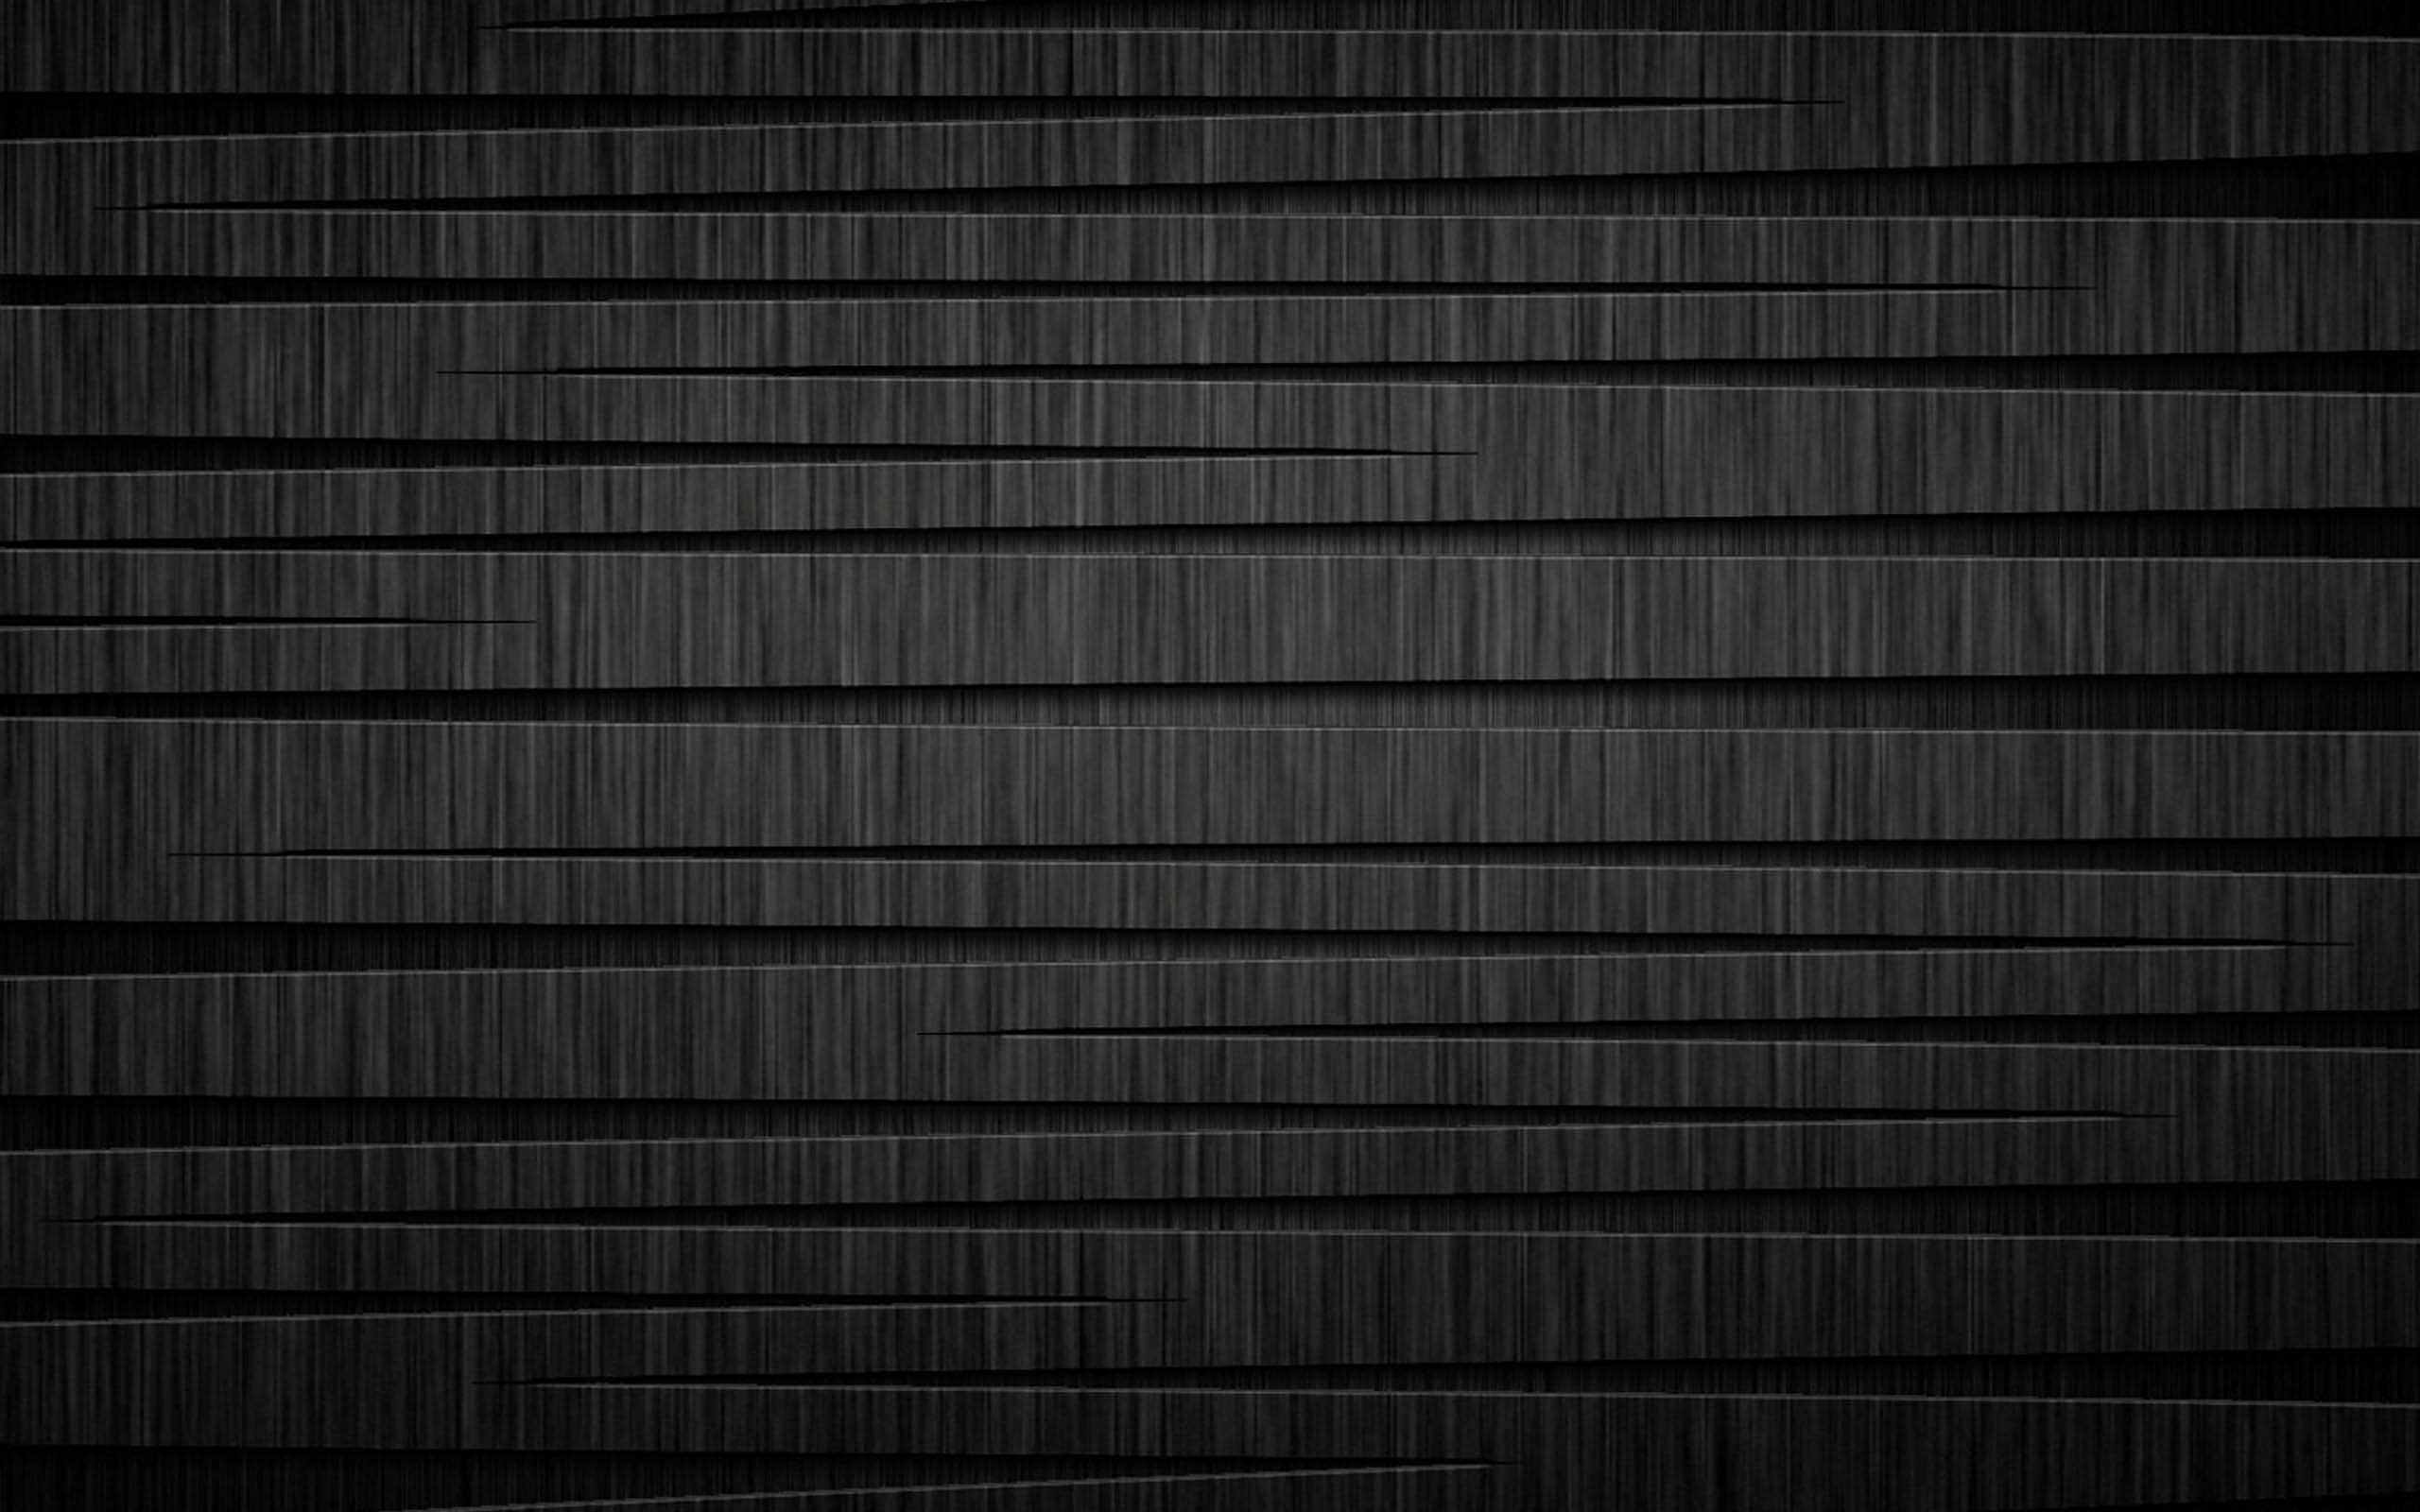 black-abstract-background-7